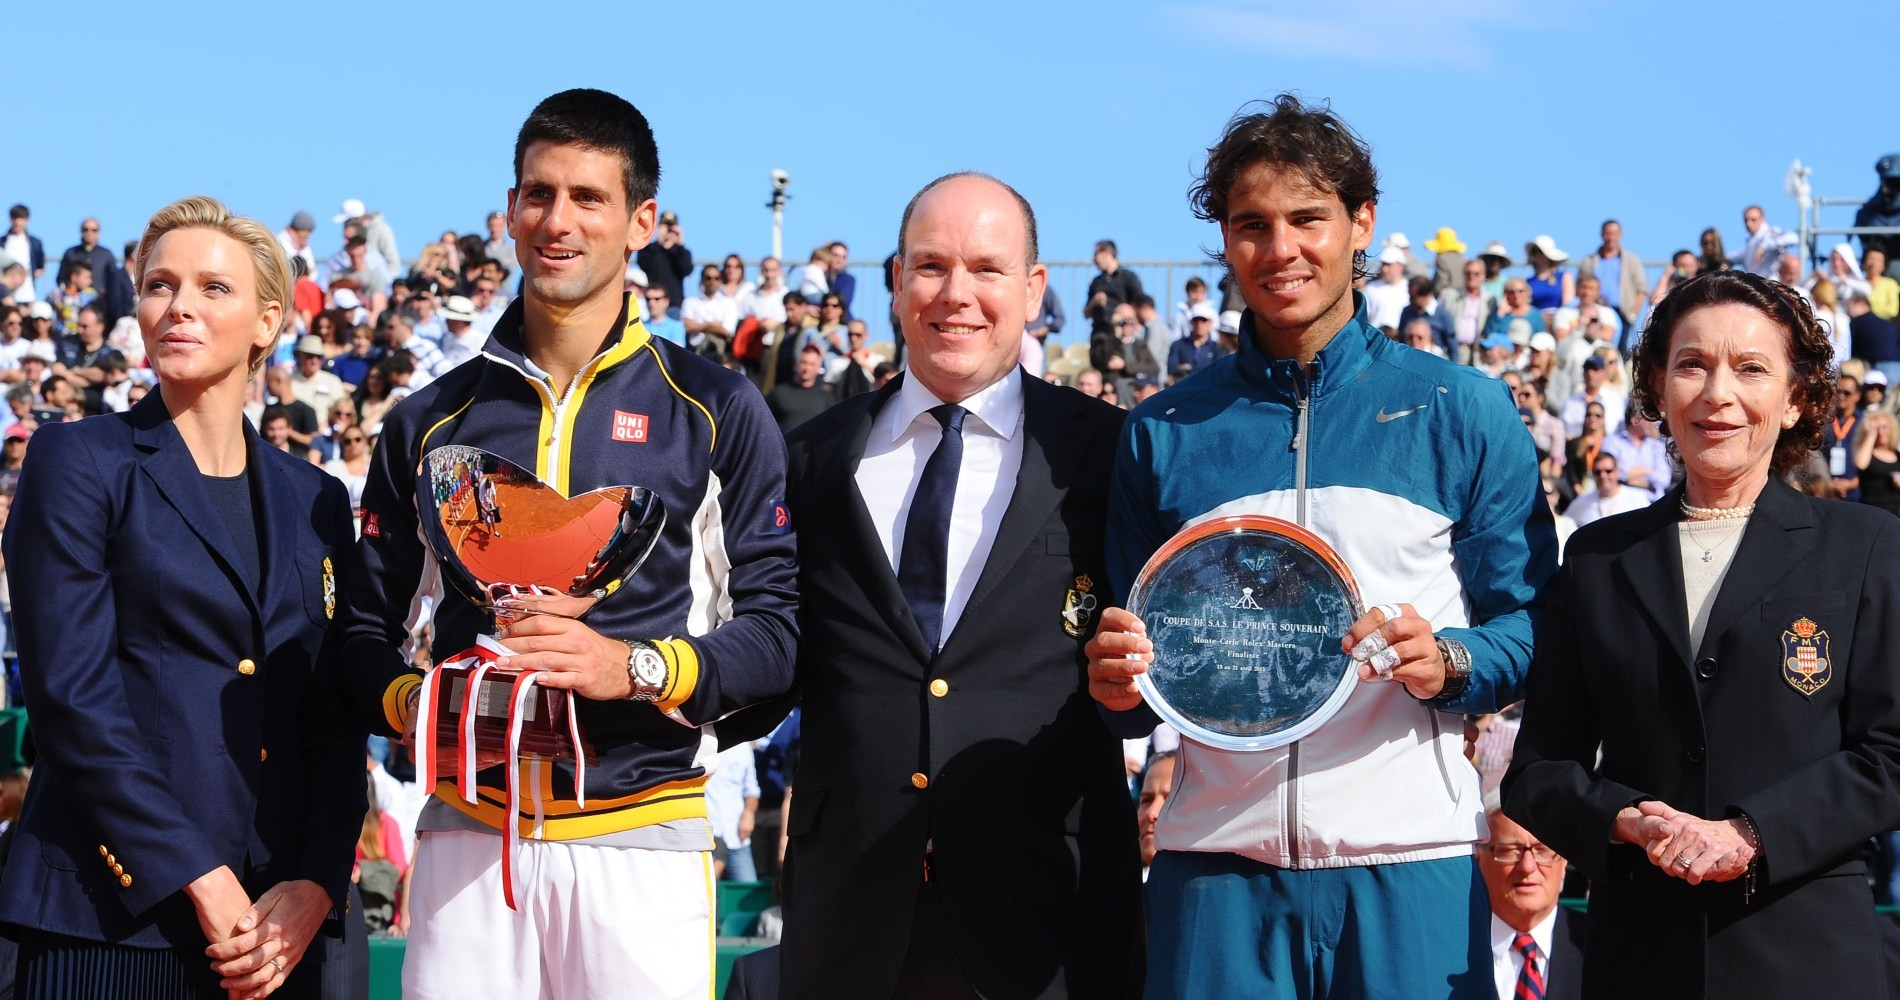 Novak Djokovic and Rafael Nadal pose with their trophies after the 2013 final.